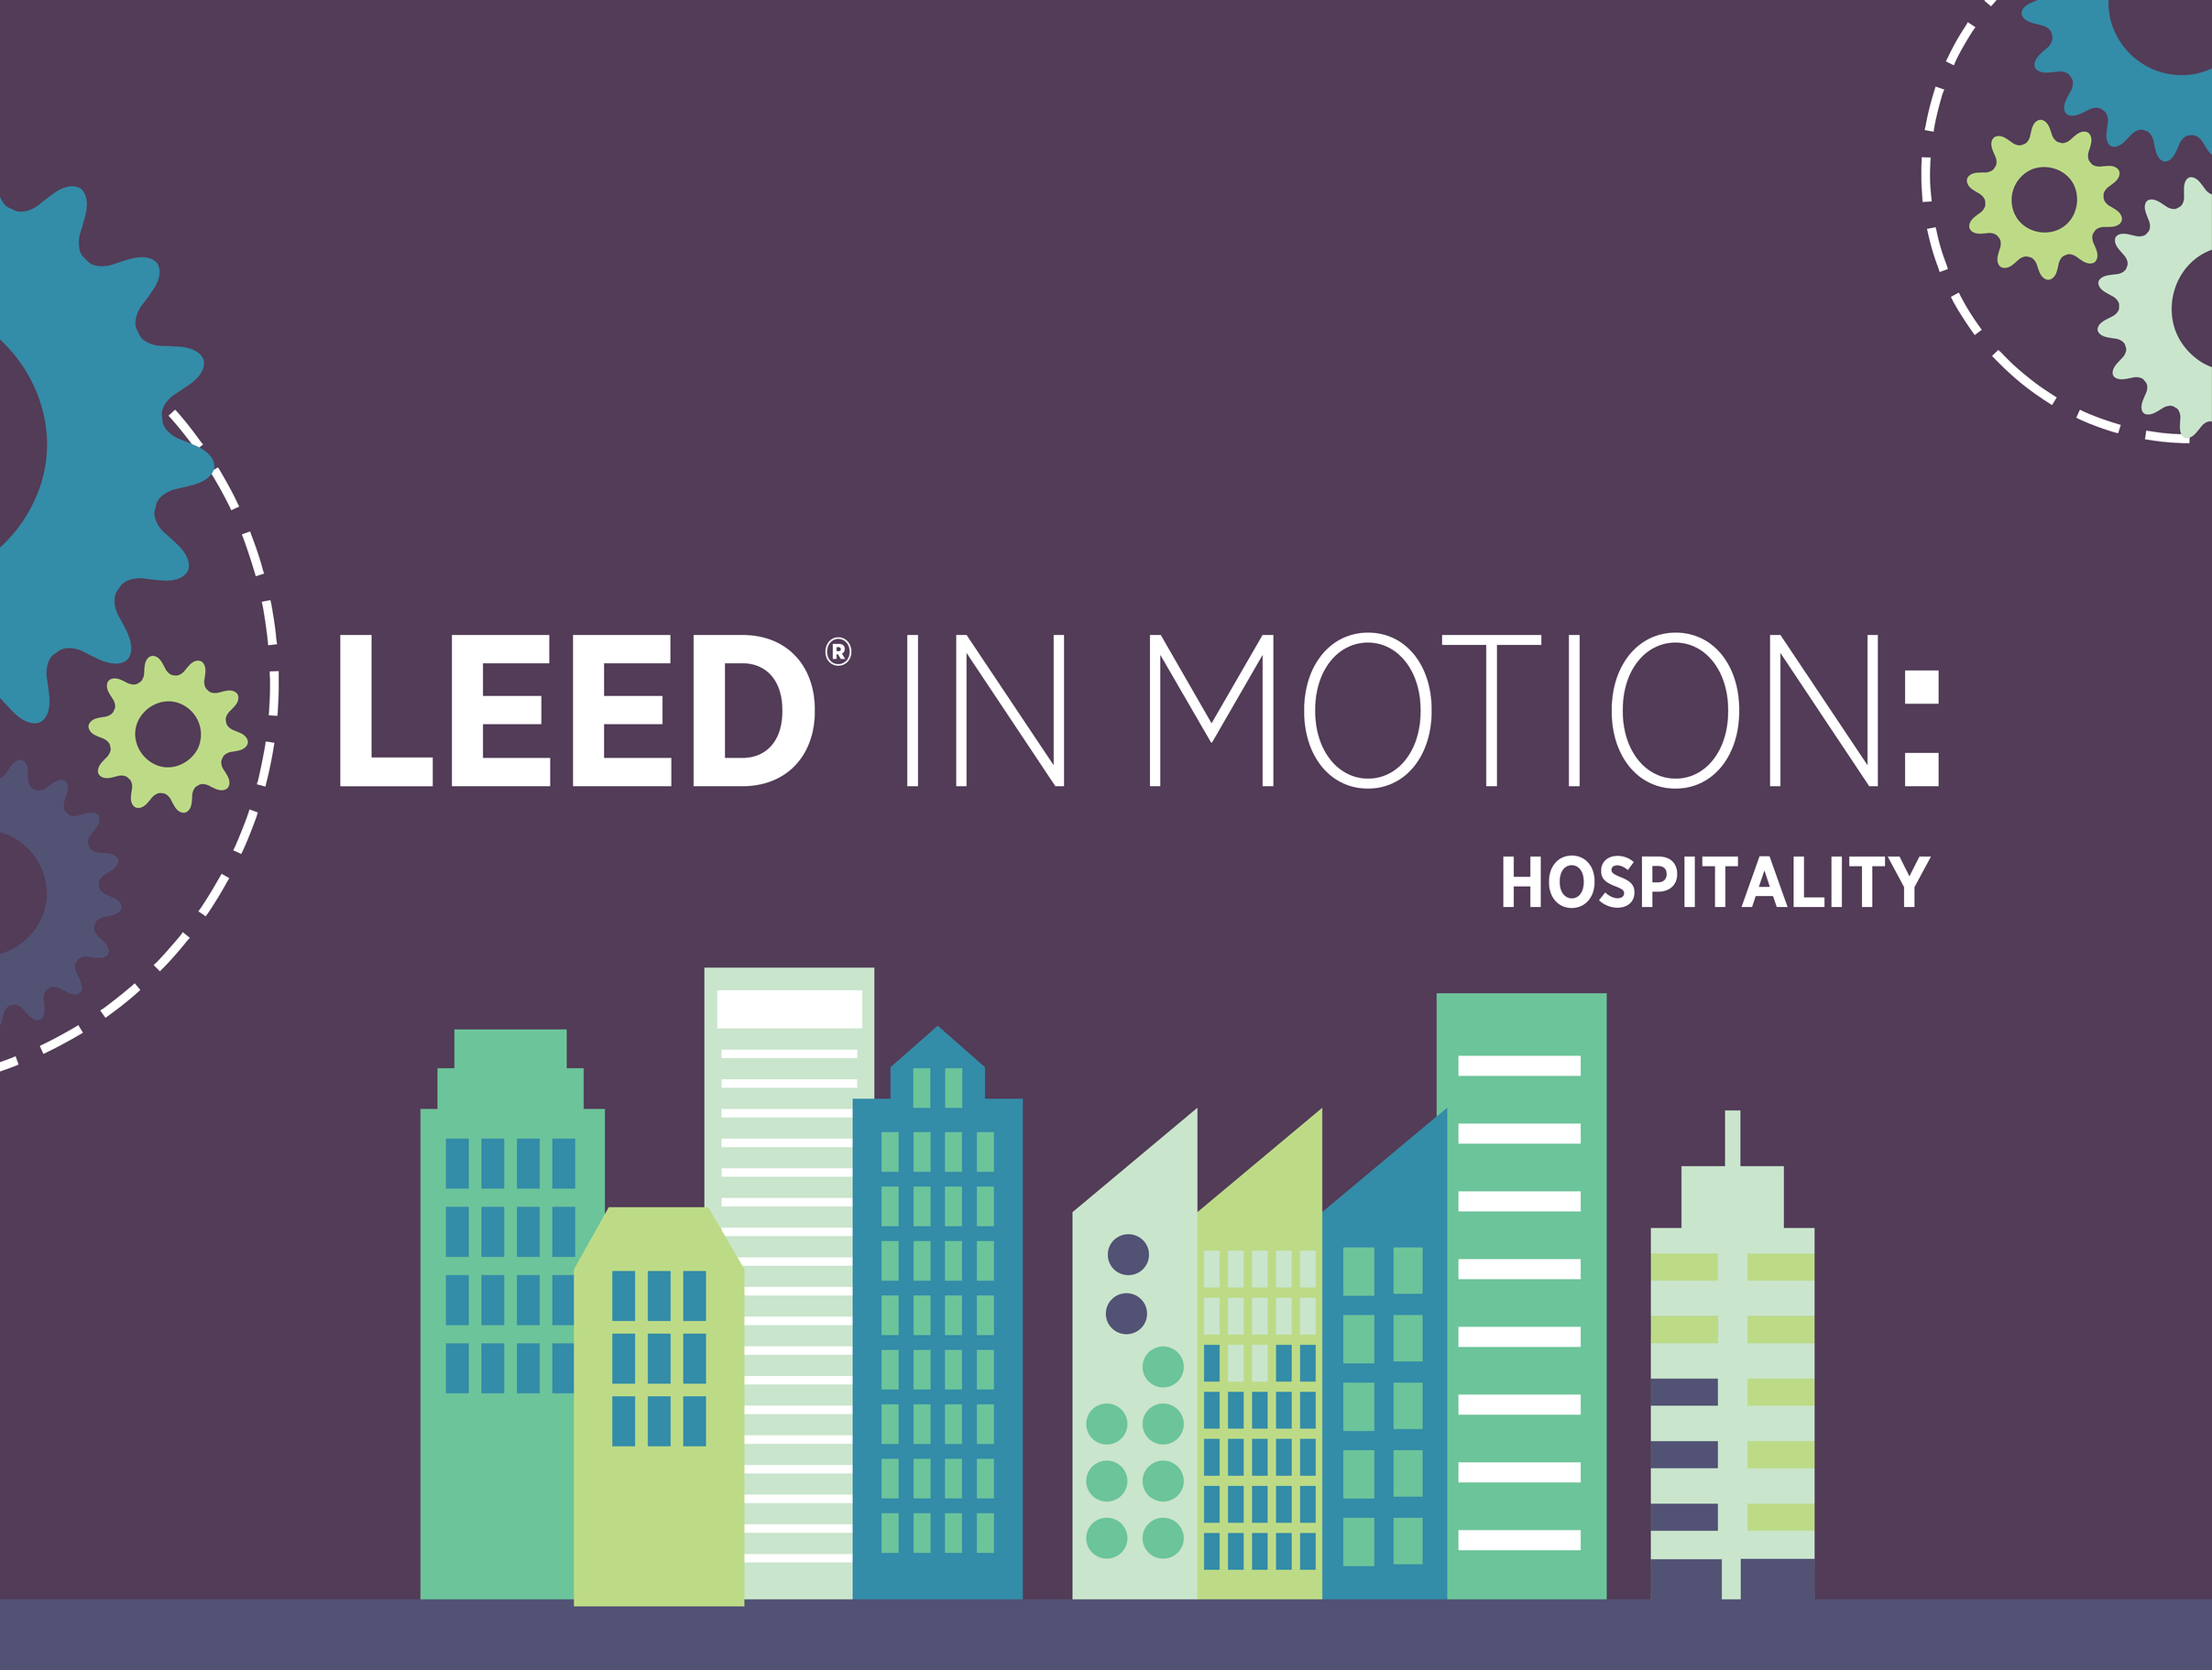 Leed in motion hospitality by usgbc readymag building projects earn points to achieve one of four different levels of leed certification certified silver gold or platinum 1betcityfo Choice Image